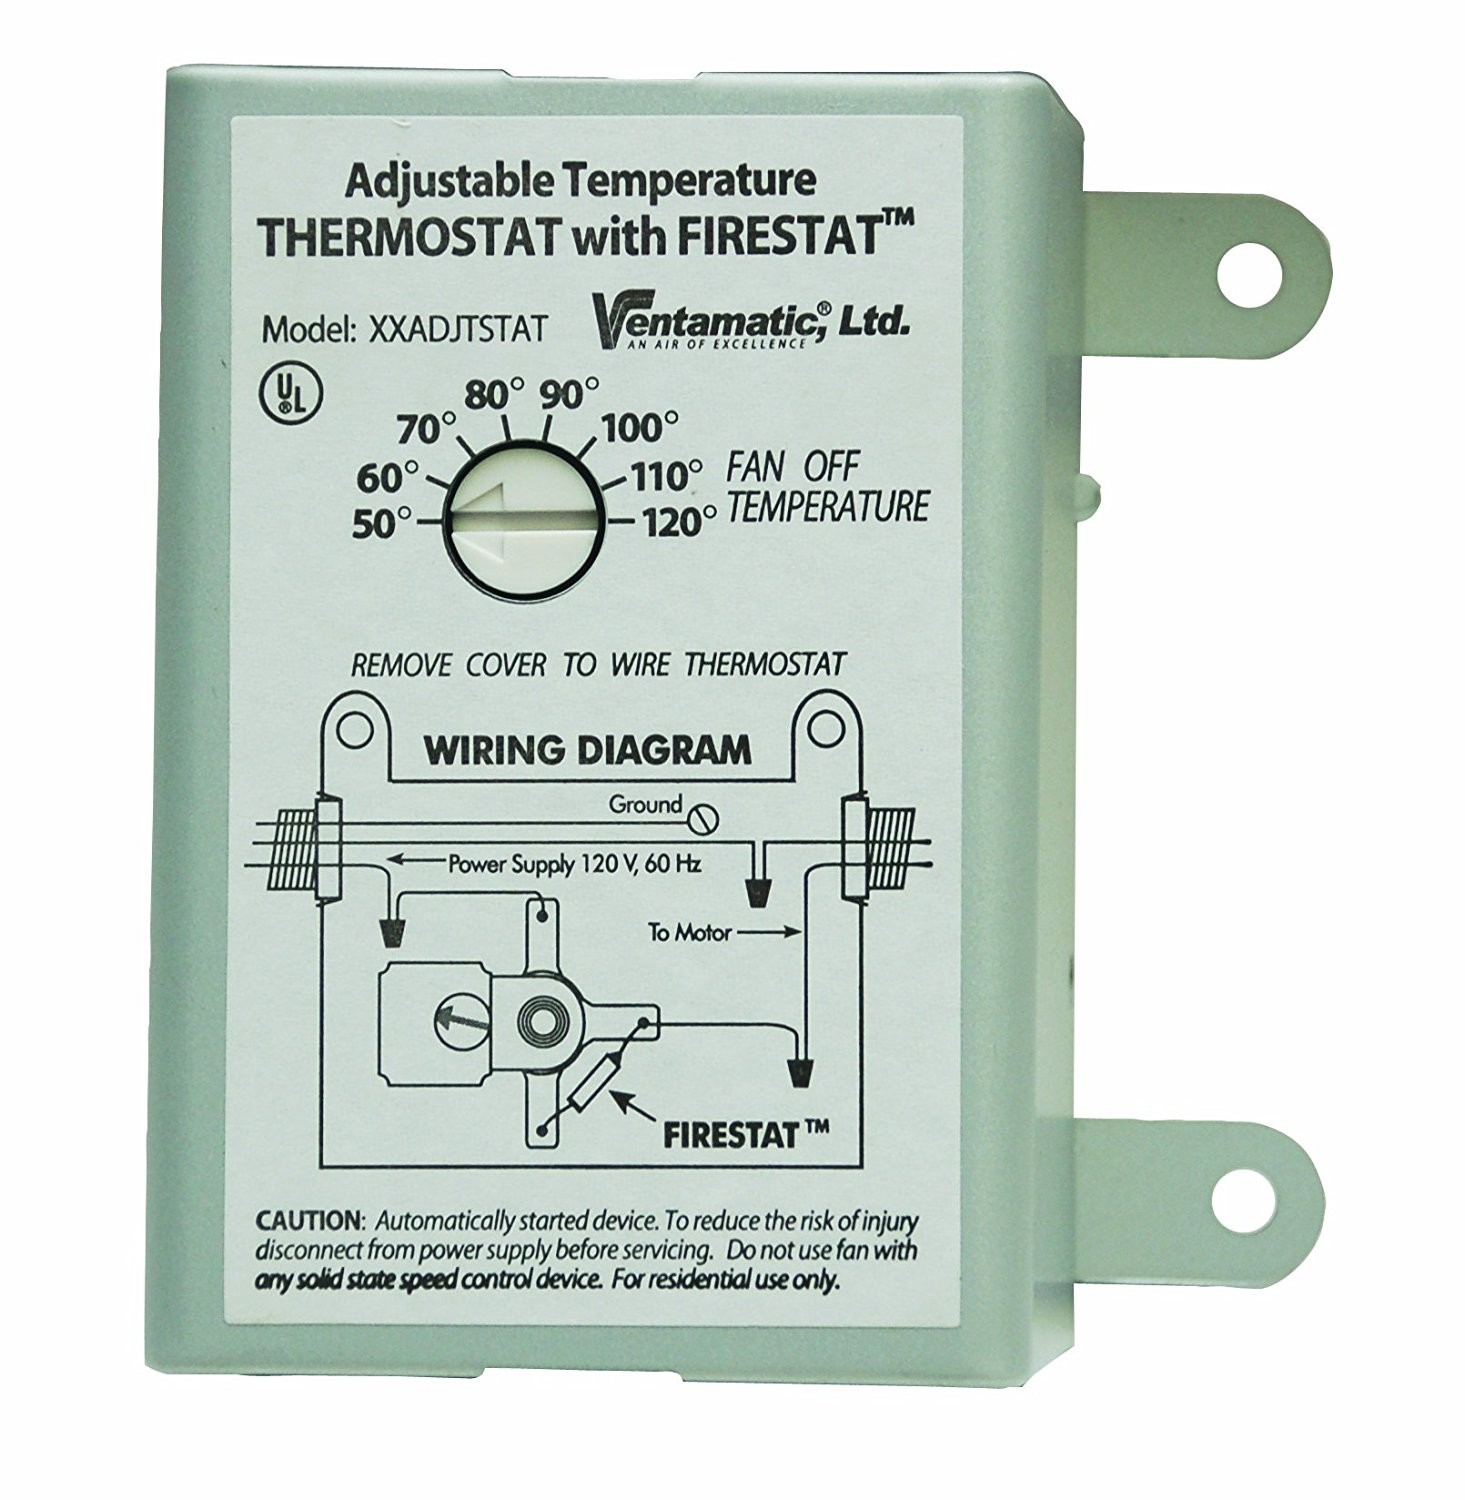 Ventamatic XXFIRESTAT 10 Amp Adjustable Programmable Thermostat with Firestat for Power Attic Ventilators Replacement Thermostat Vents Amazon